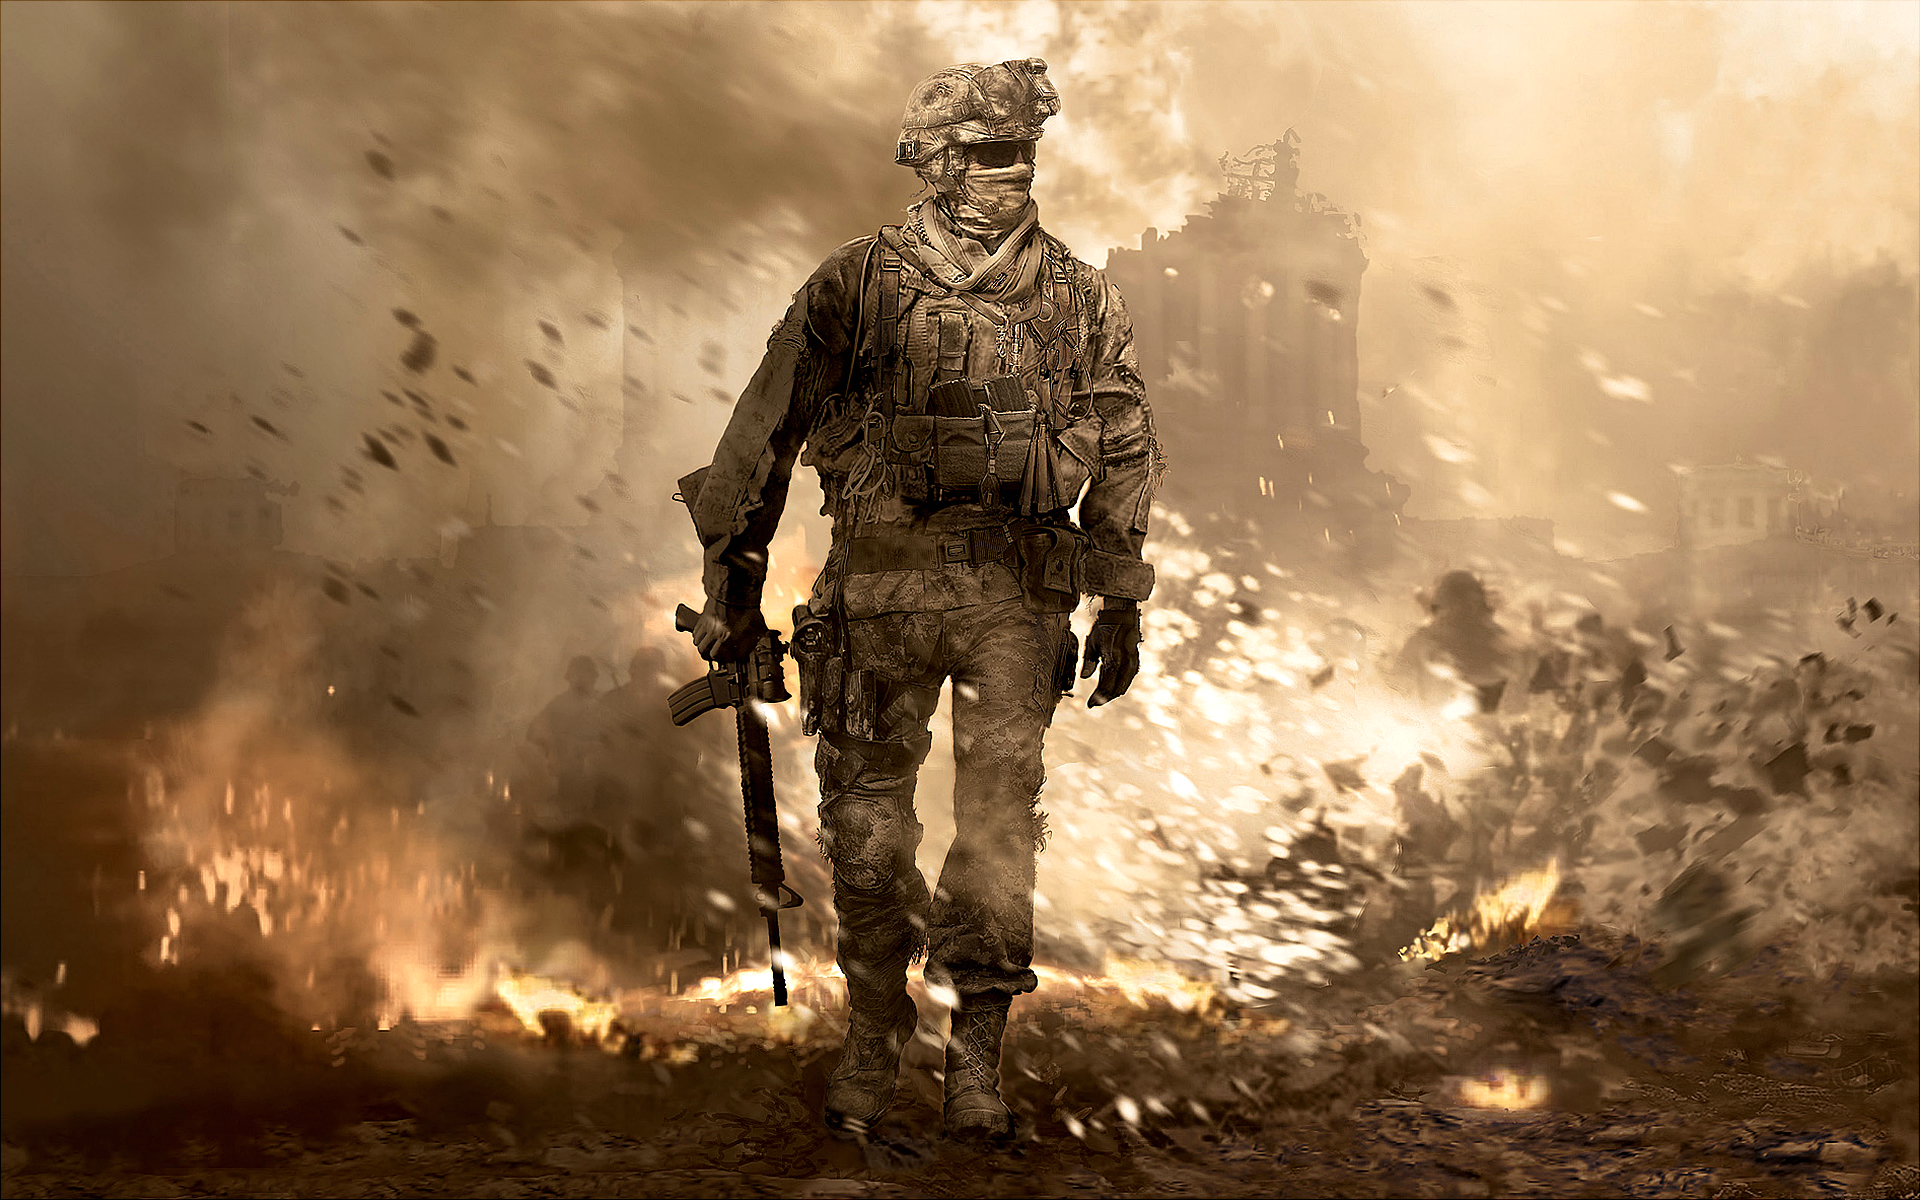 Call Of Duty Games Images COD Modern Warfare 2 HD Wallpaper And Background Photos